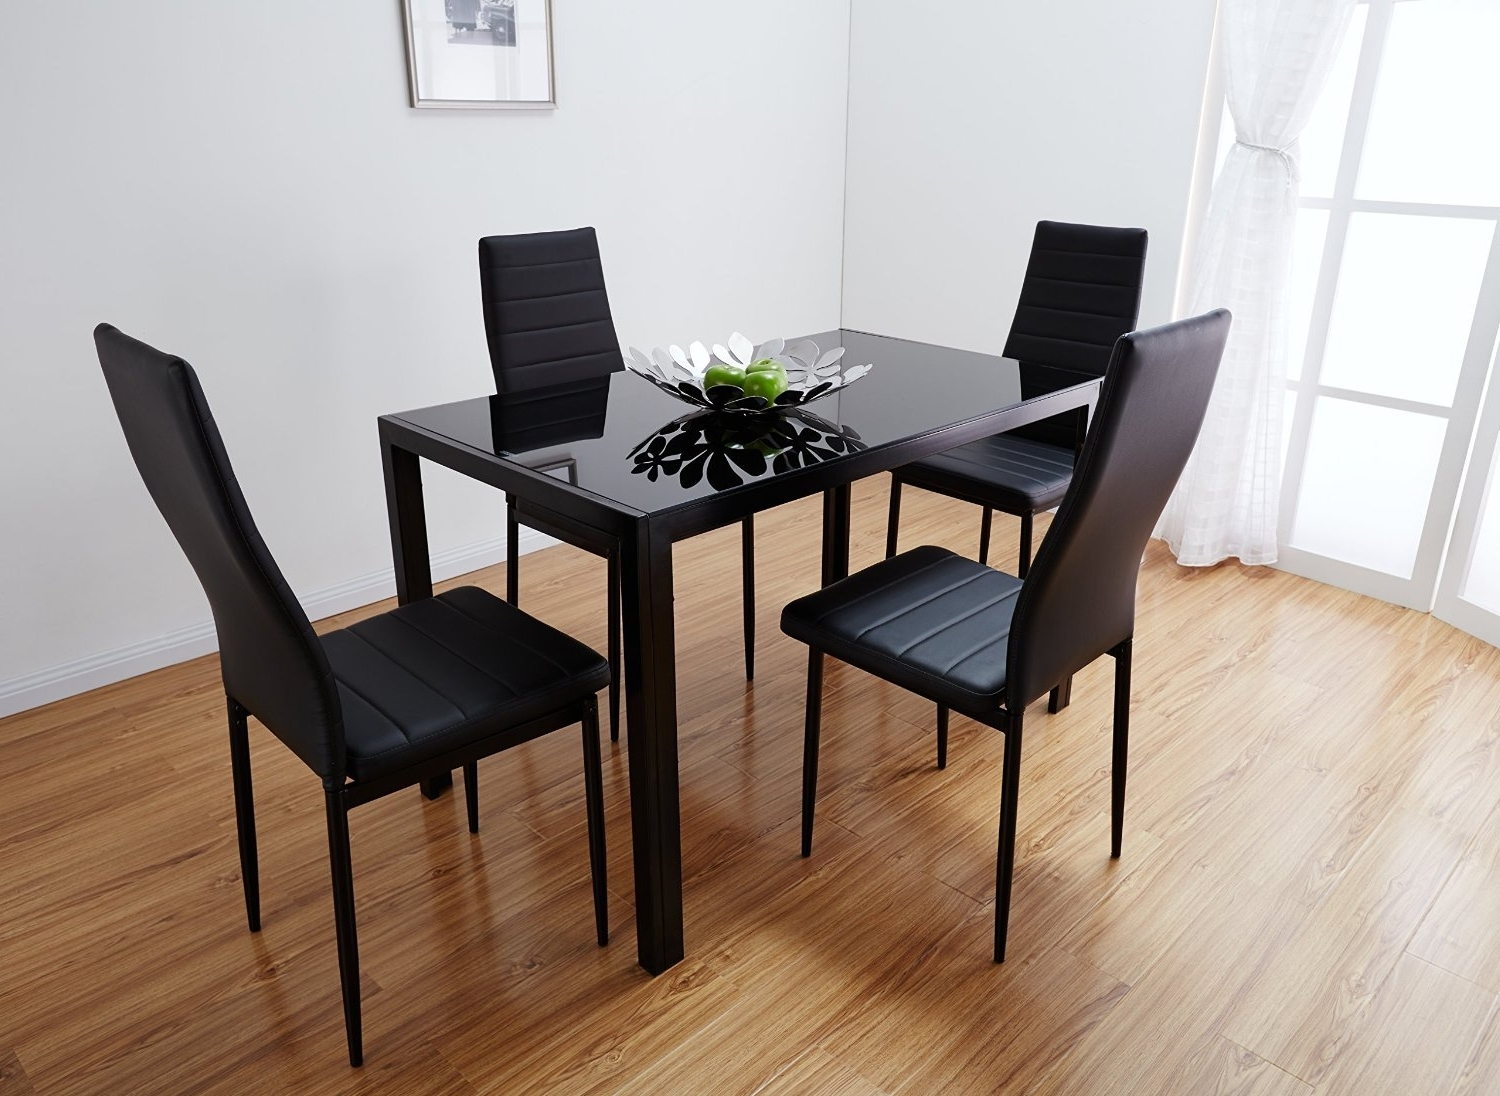 Round Black Glass Dining Tables And Chairs With Regard To Current Dining Room Round Glass Dining Table With Chairs Dining Room Chairs (View 20 of 25)